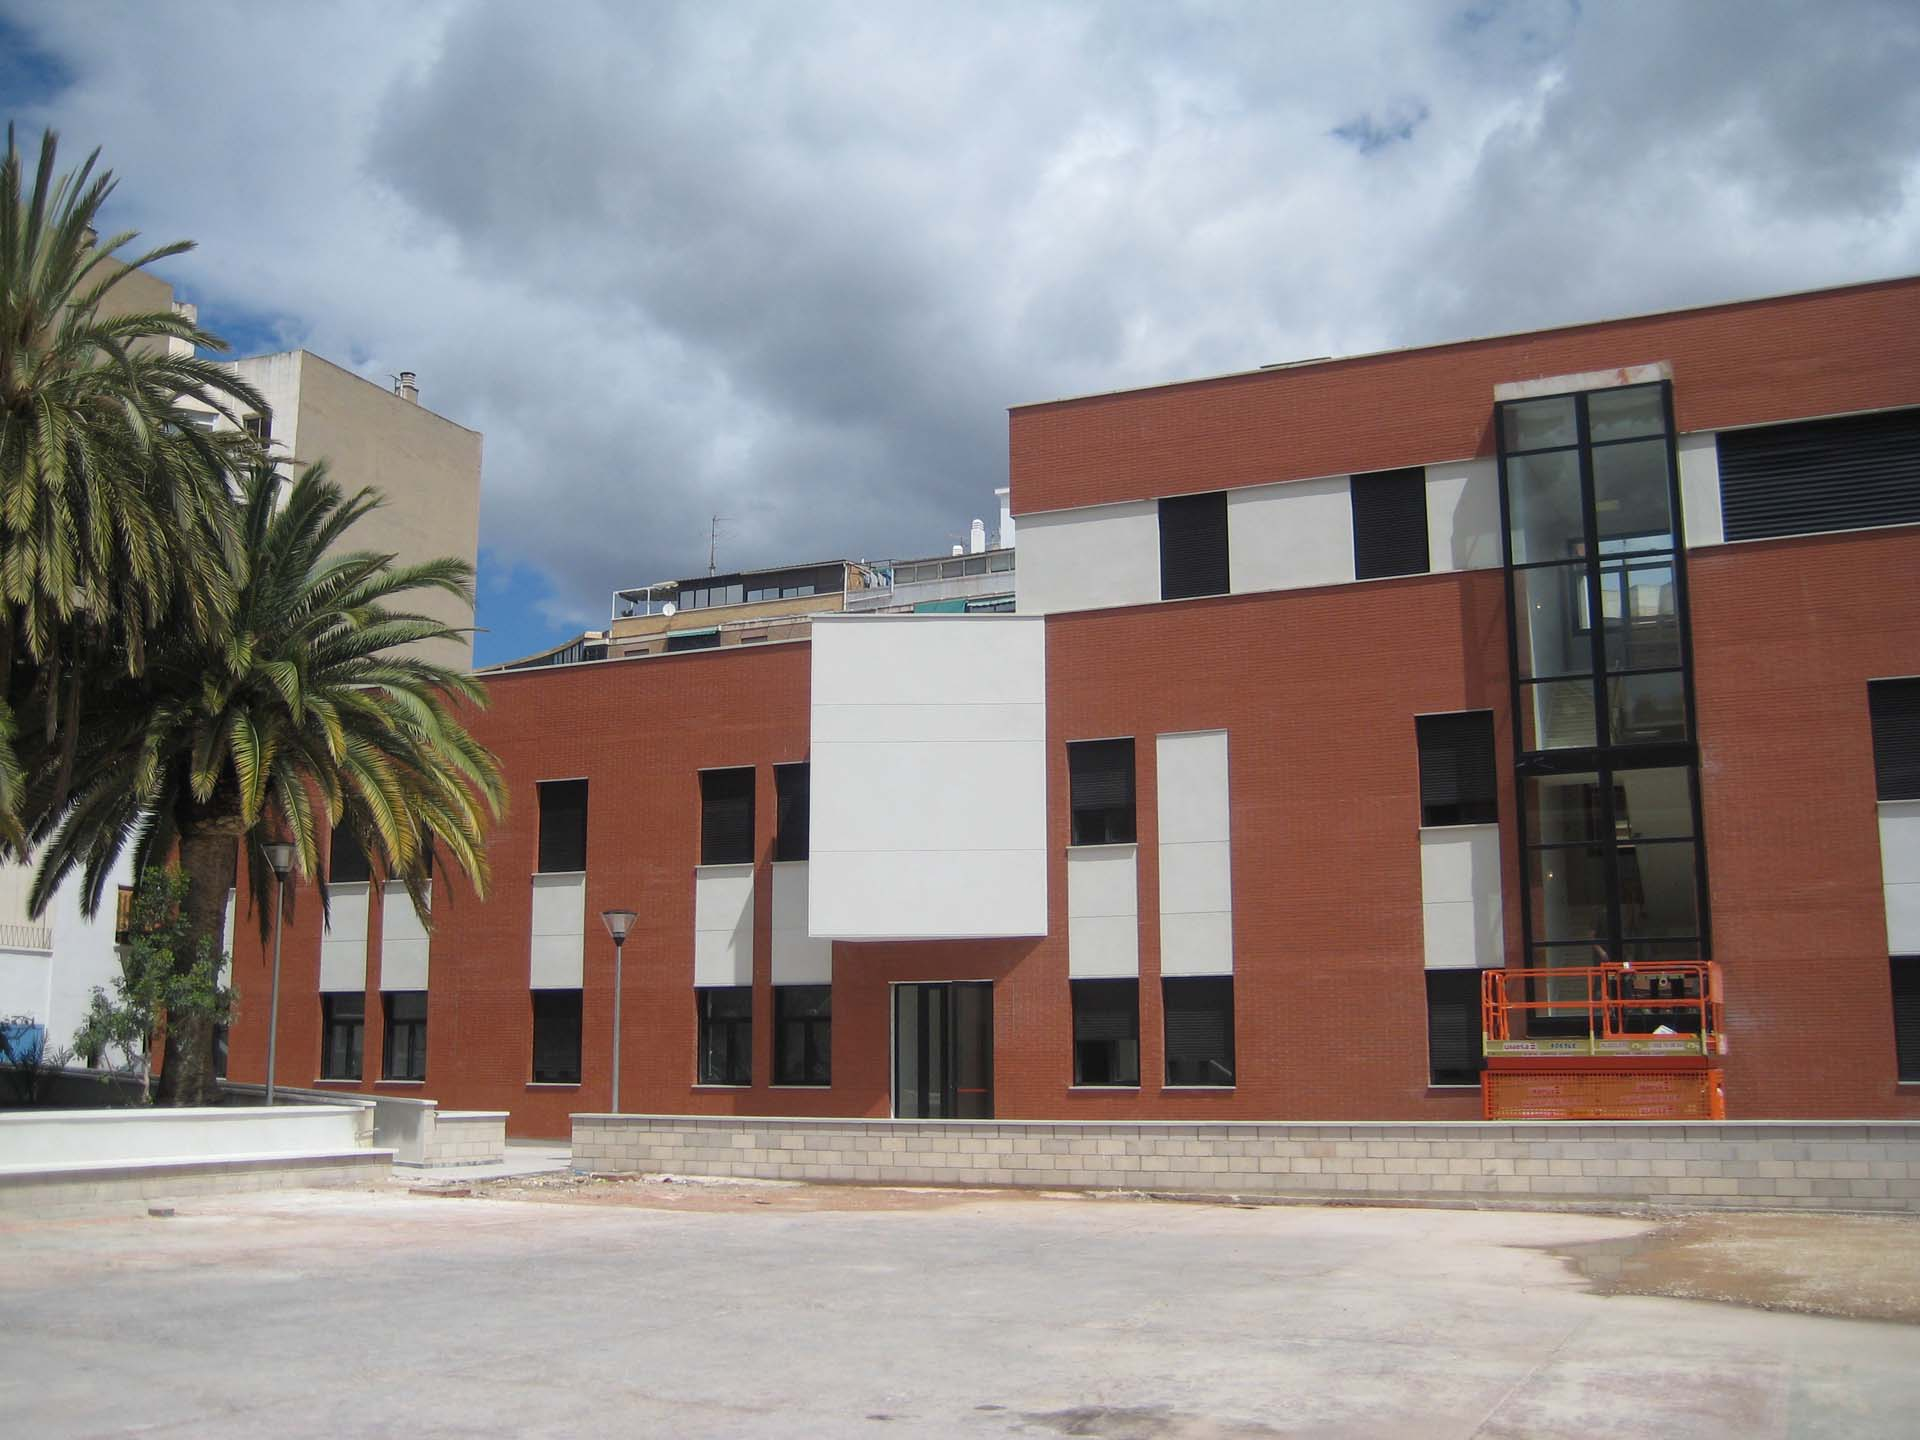 Building for Youngsters Els Estels